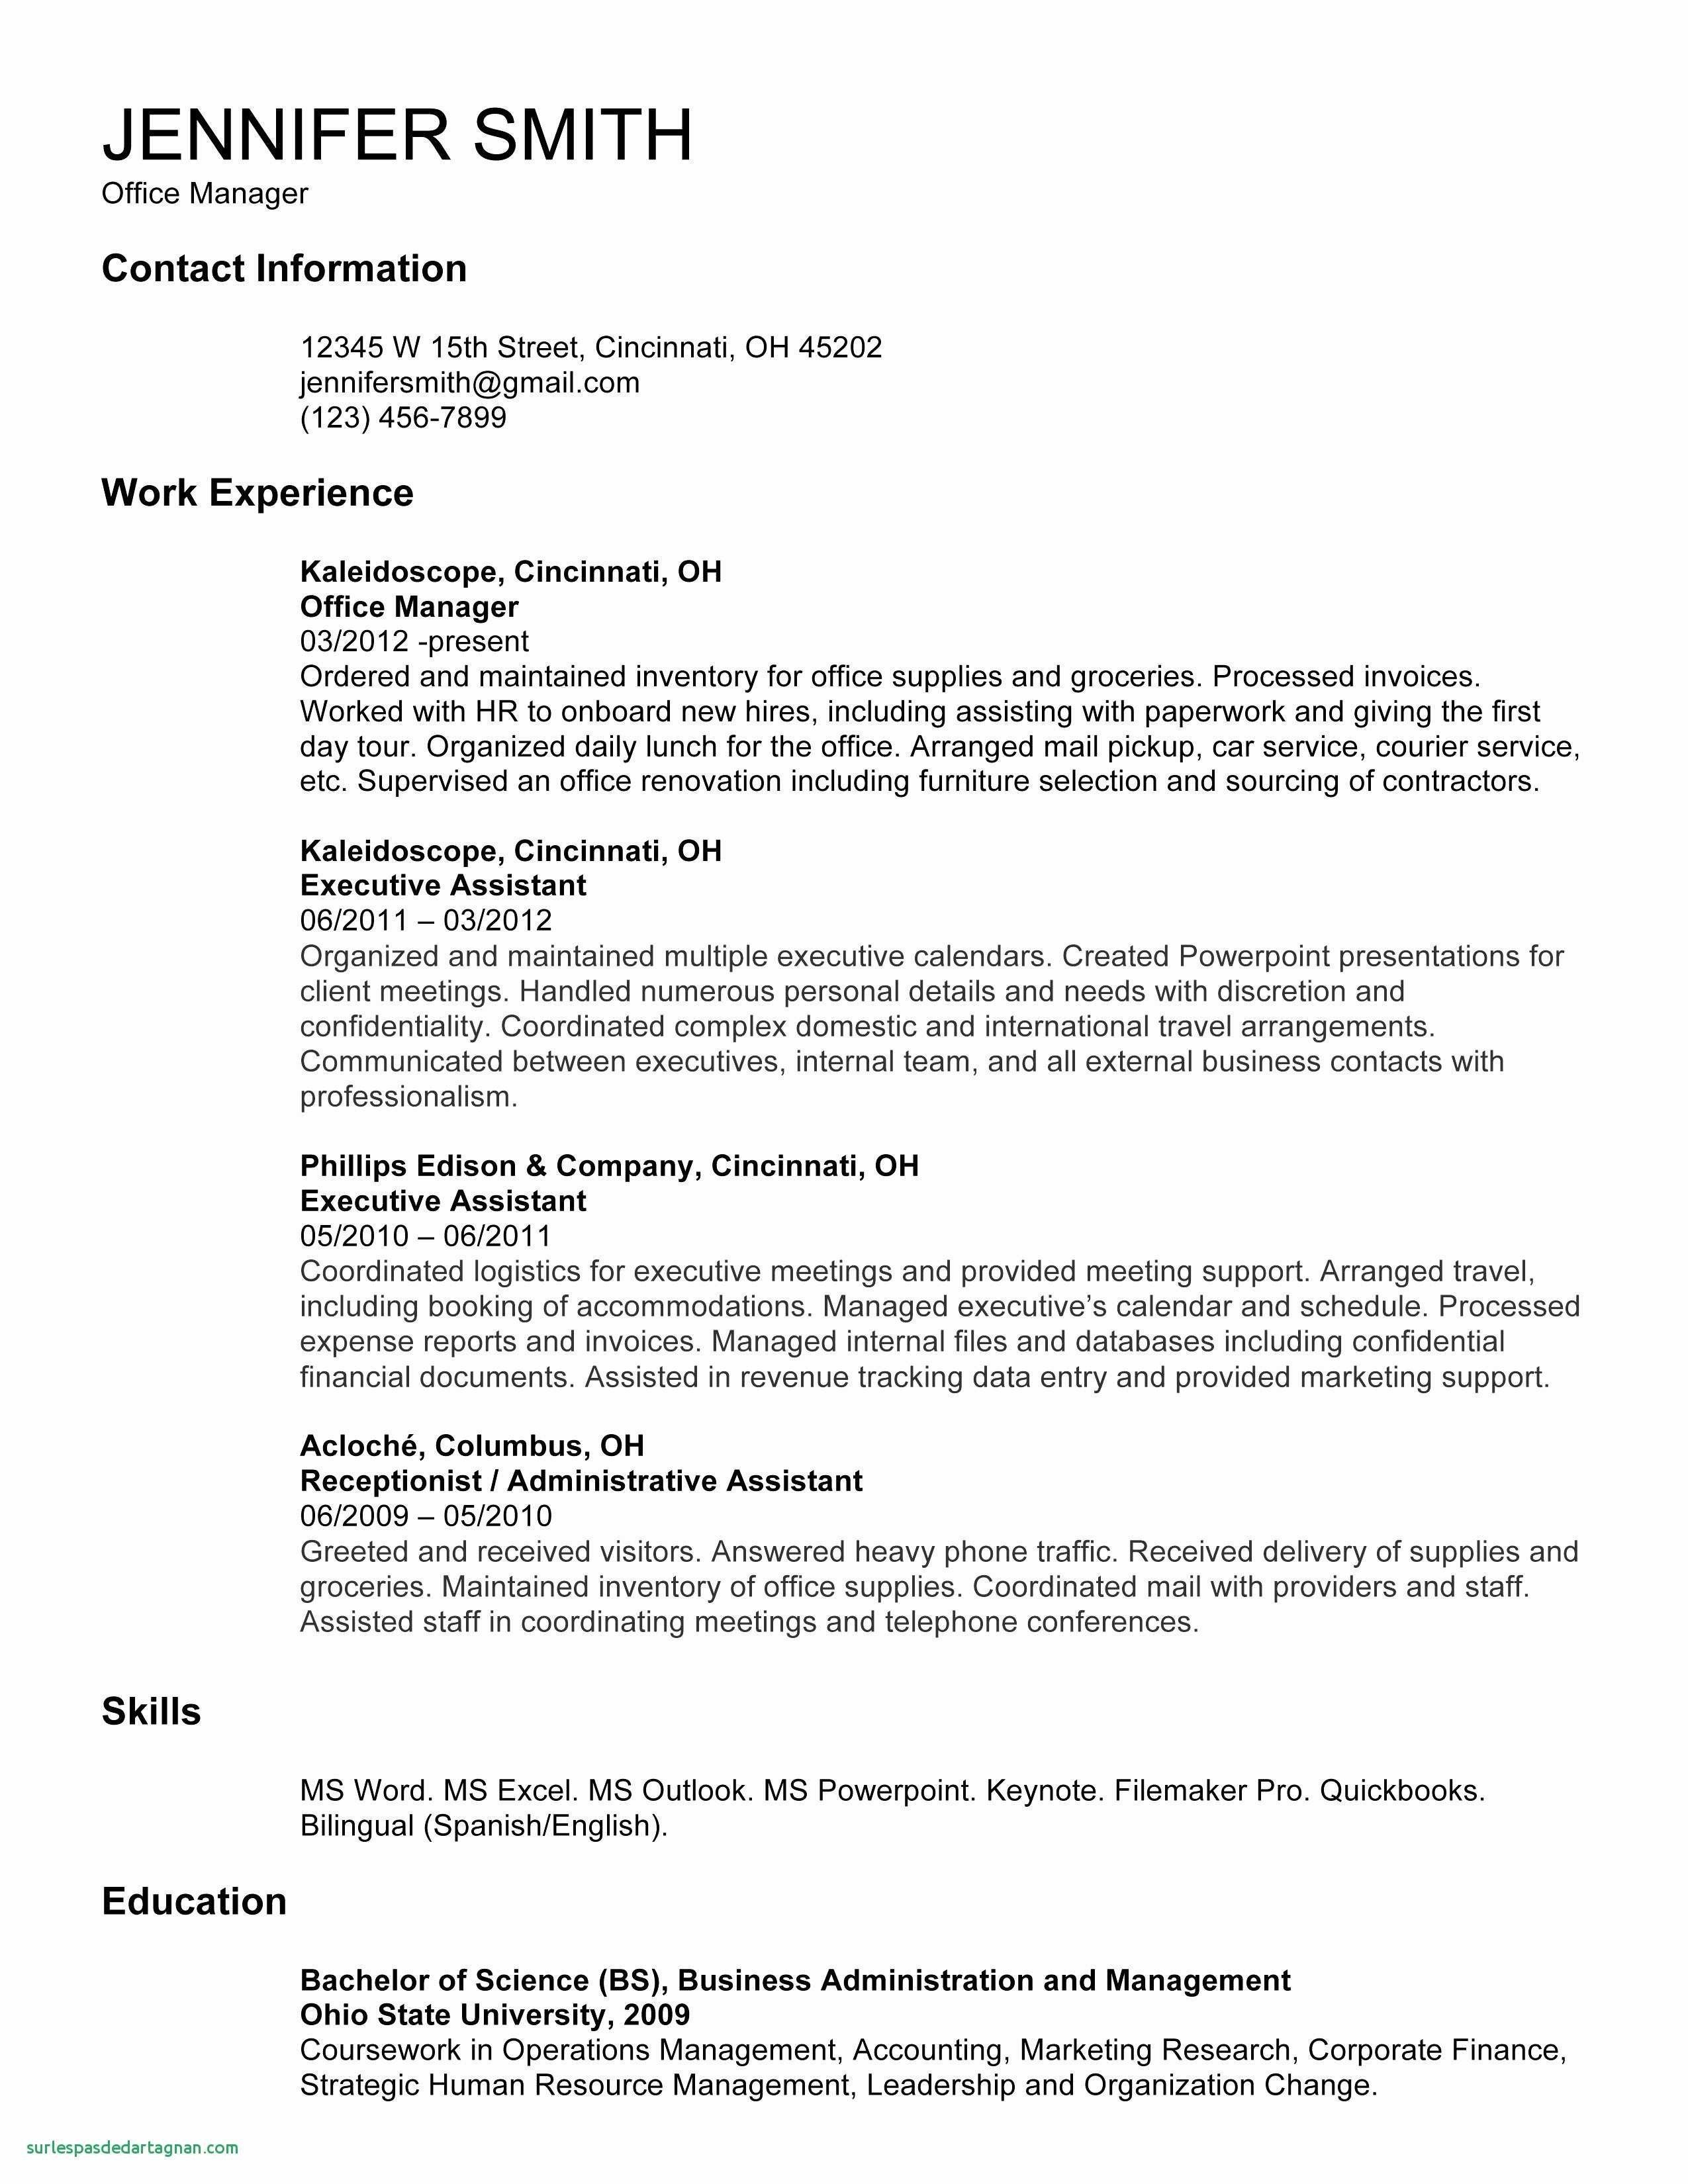 Resume Free Templates - Free Templates for Resumes to Download Valid ¢Ë†Å¡ Resume Template